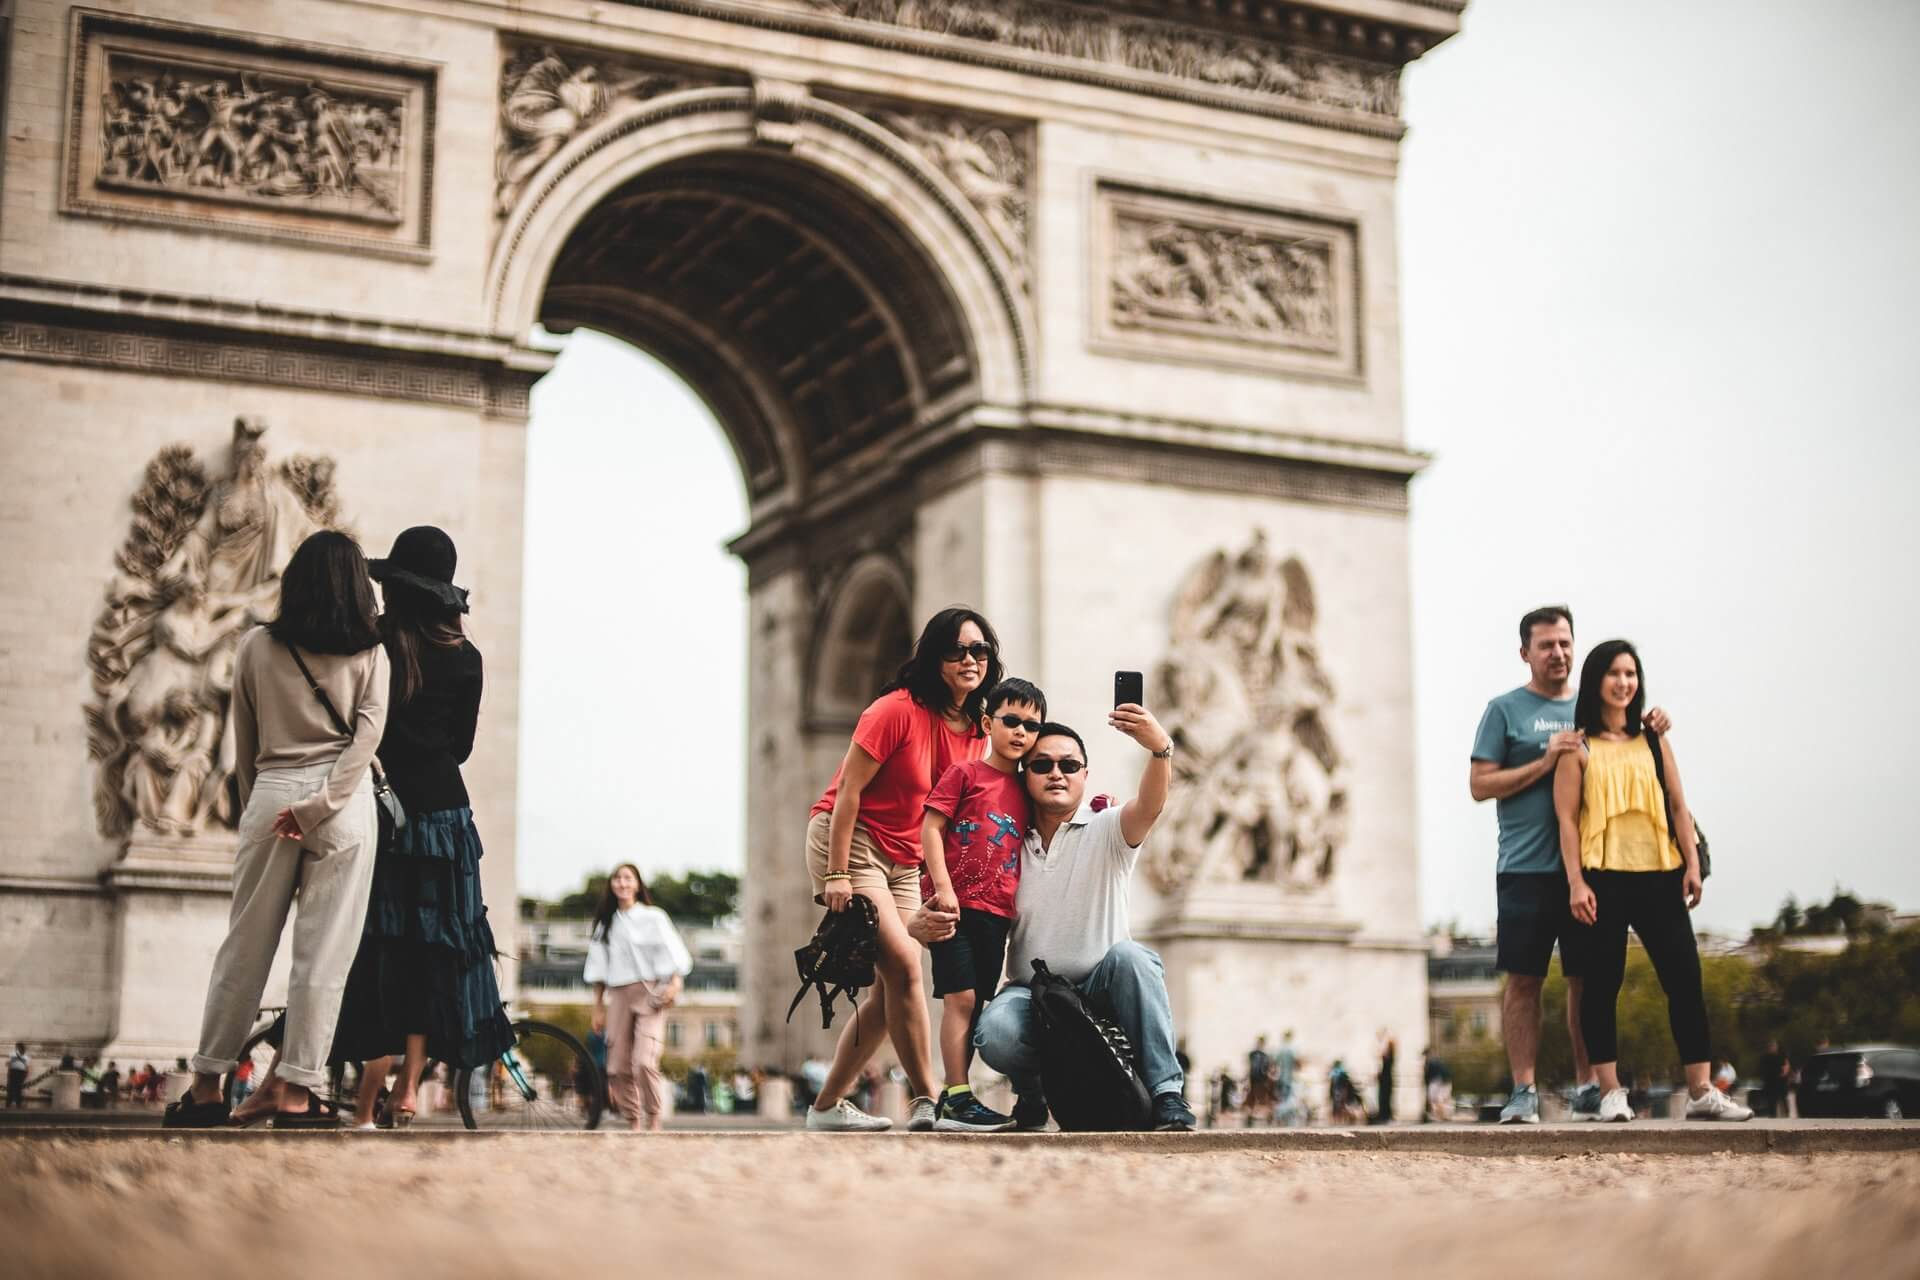 Tourists taking a selfie in frot of the Arc de Triomphe